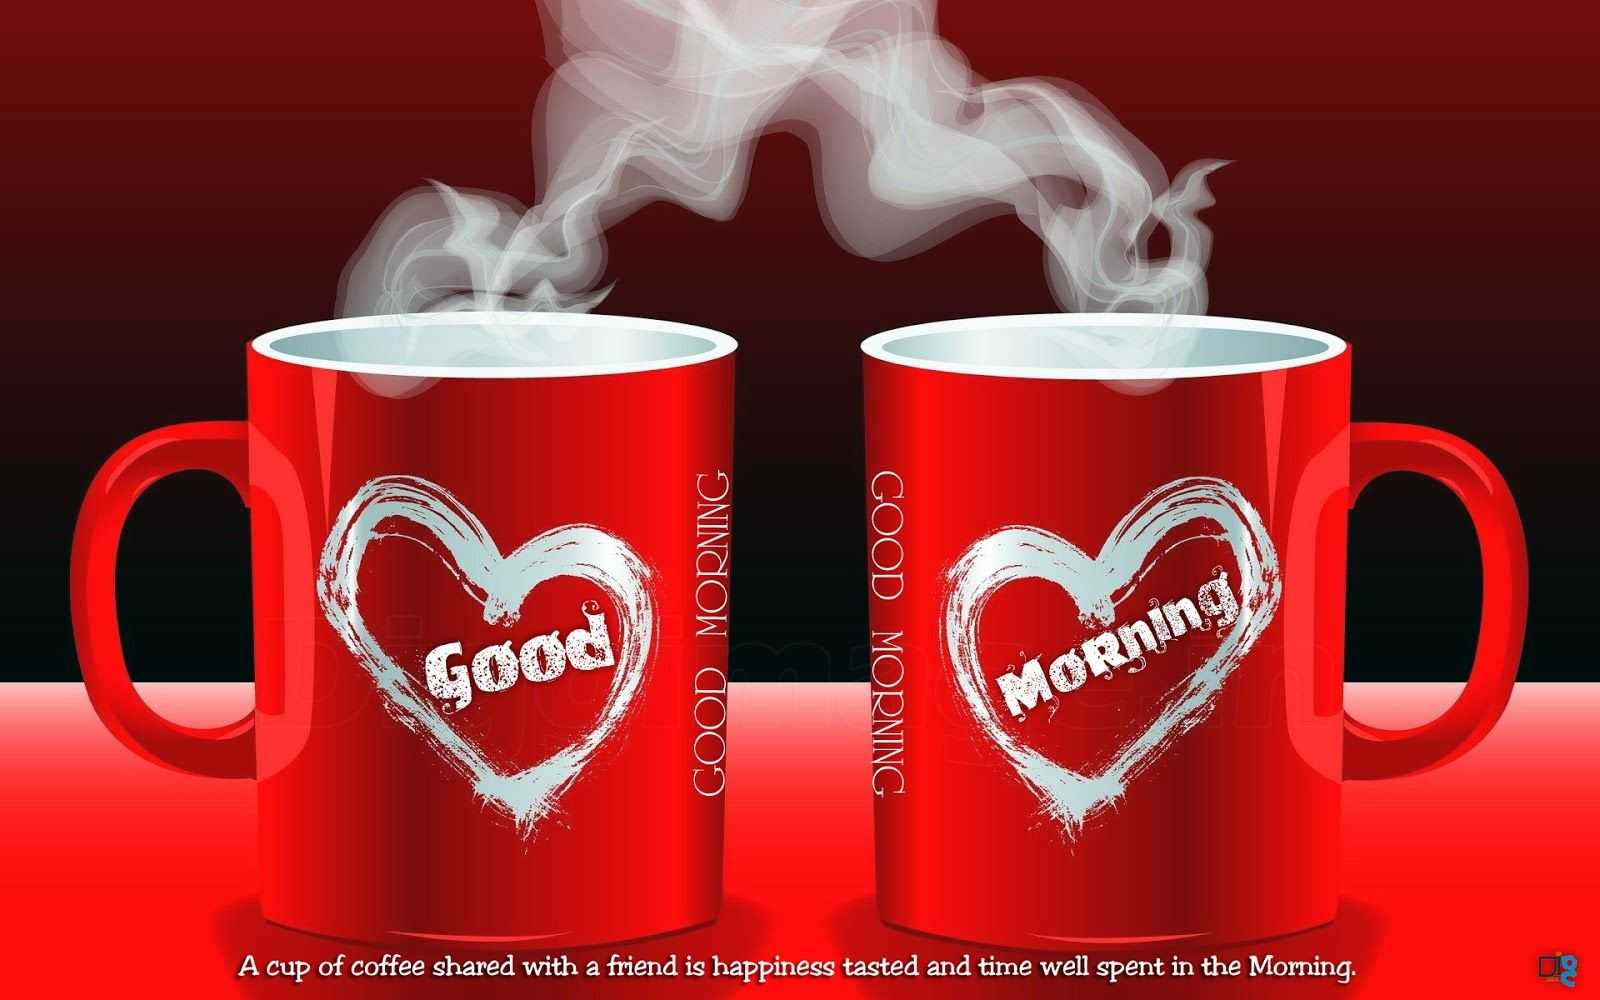 Good Morning Coffee Pics: To Get Latest And High Quality Wallpapers Just Keep Our